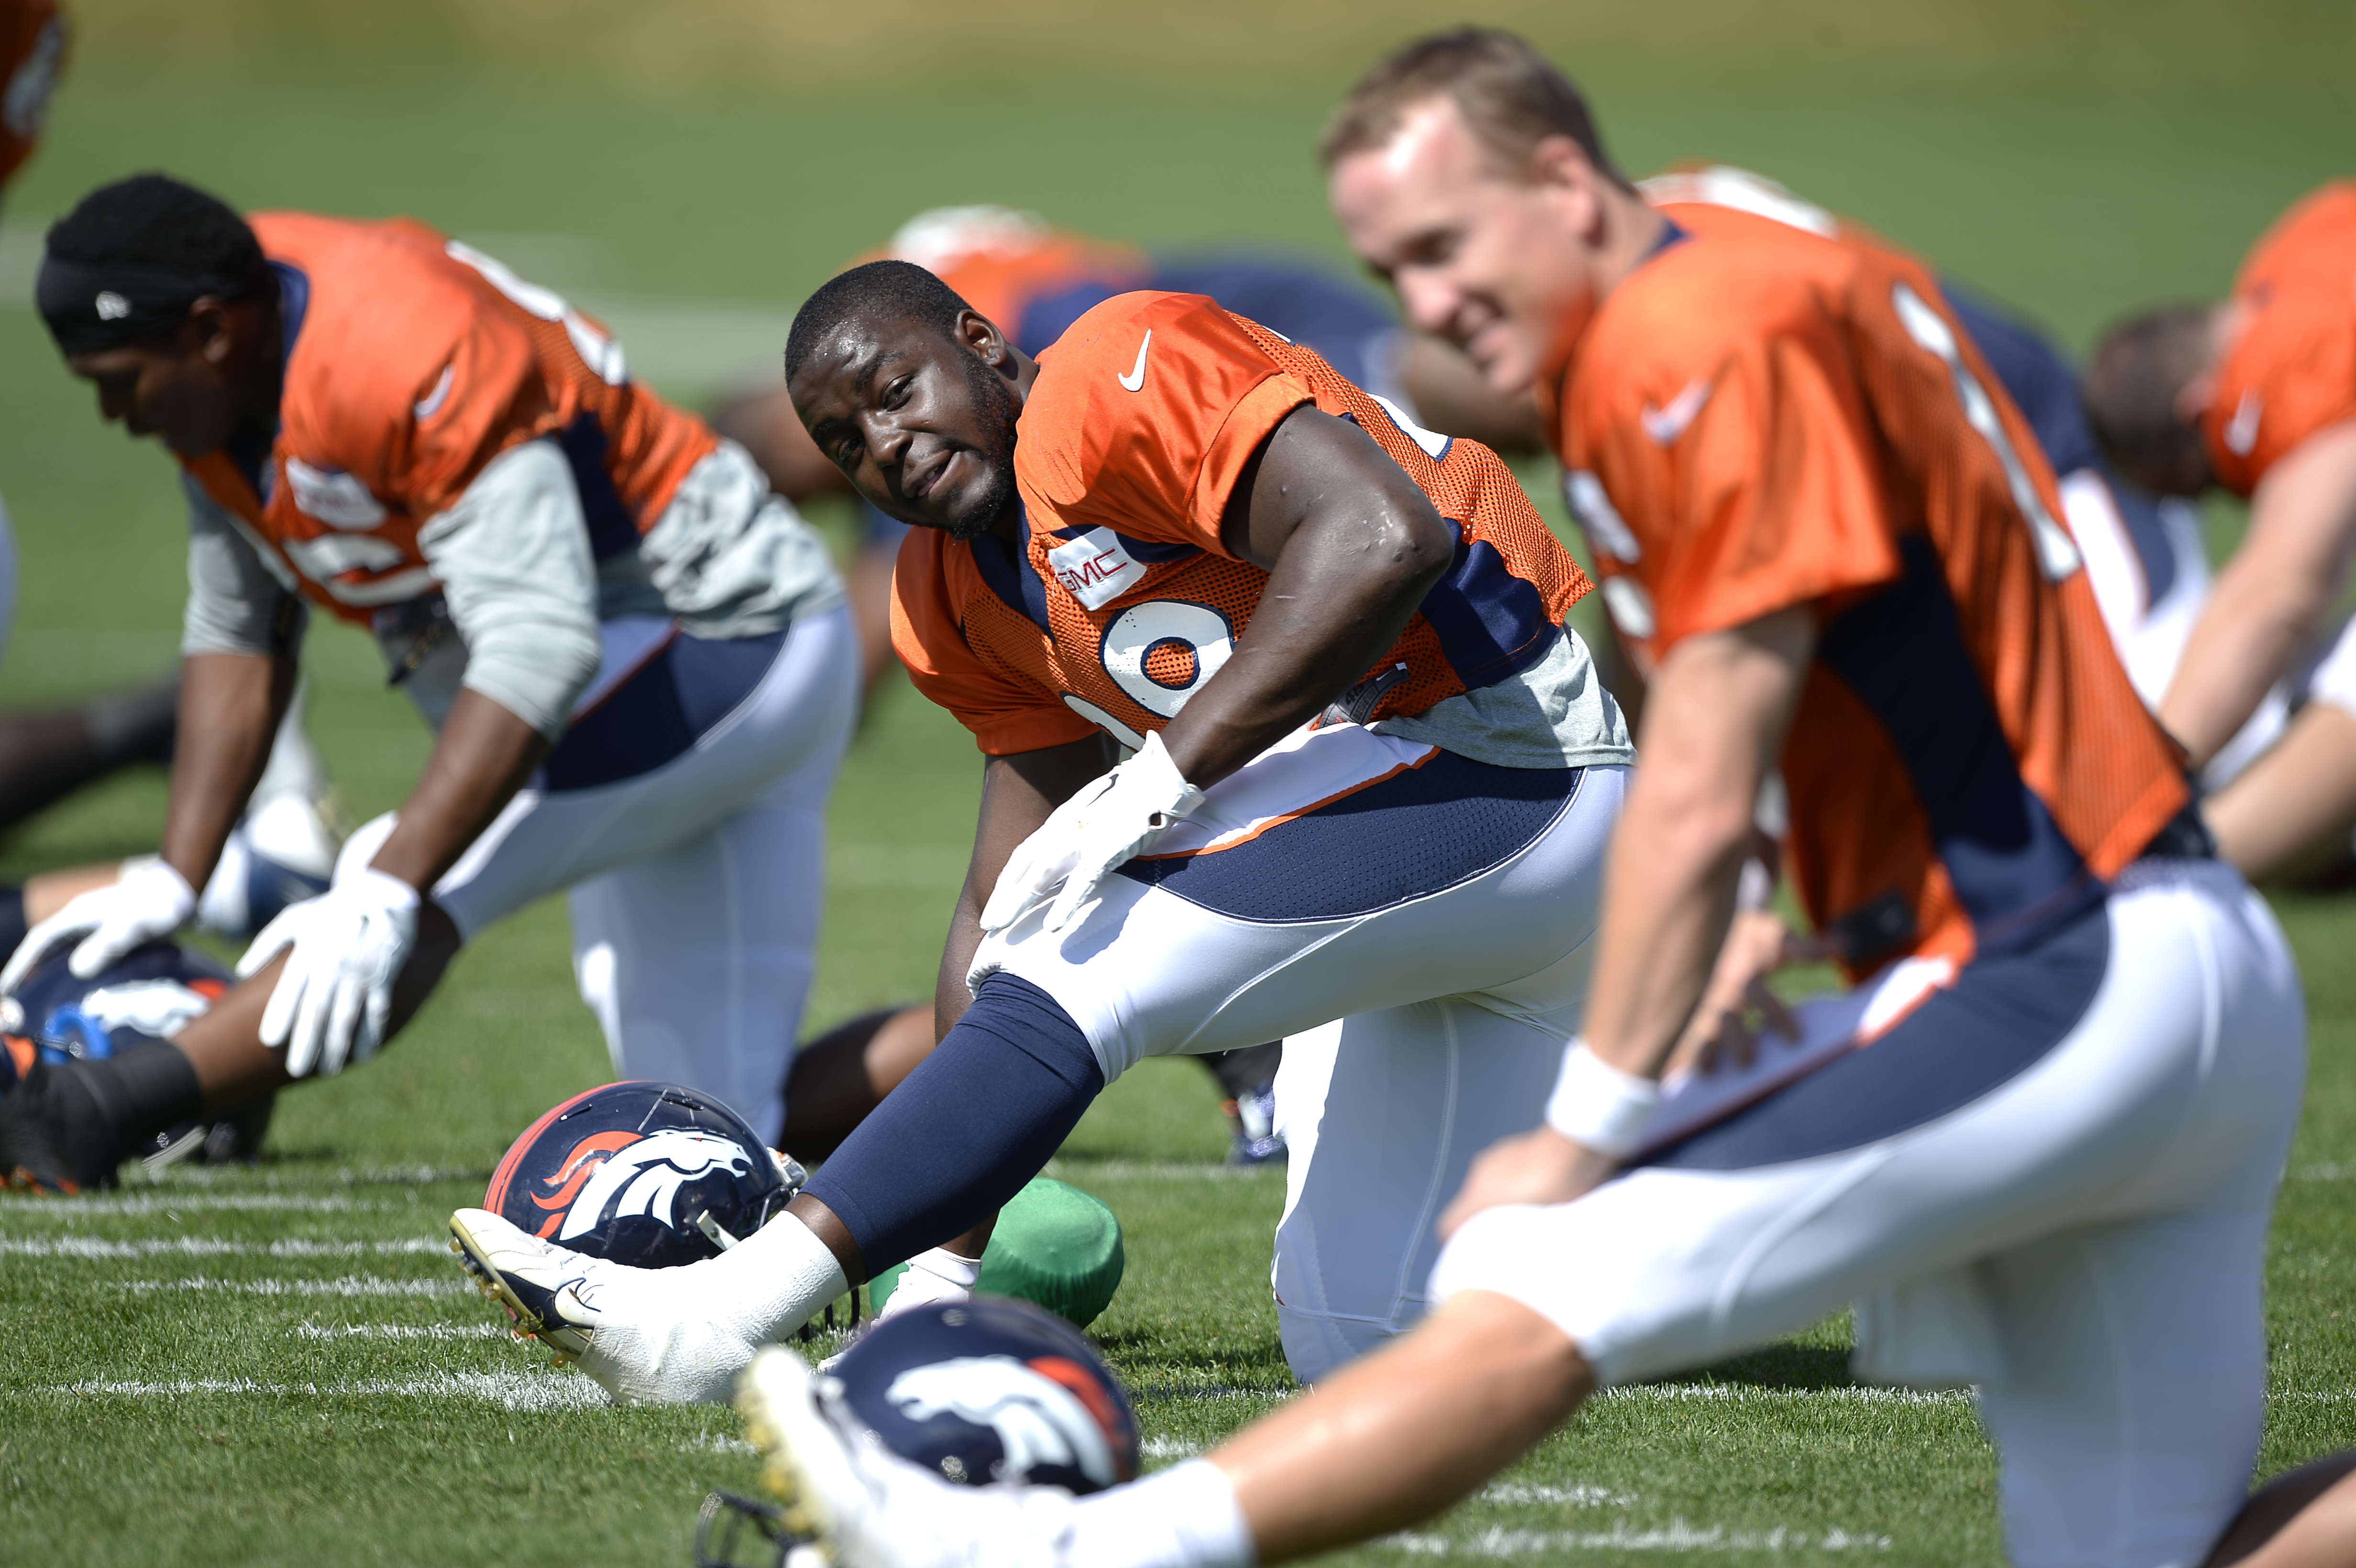 Denver Broncos running back Montee Ball stretches before practice